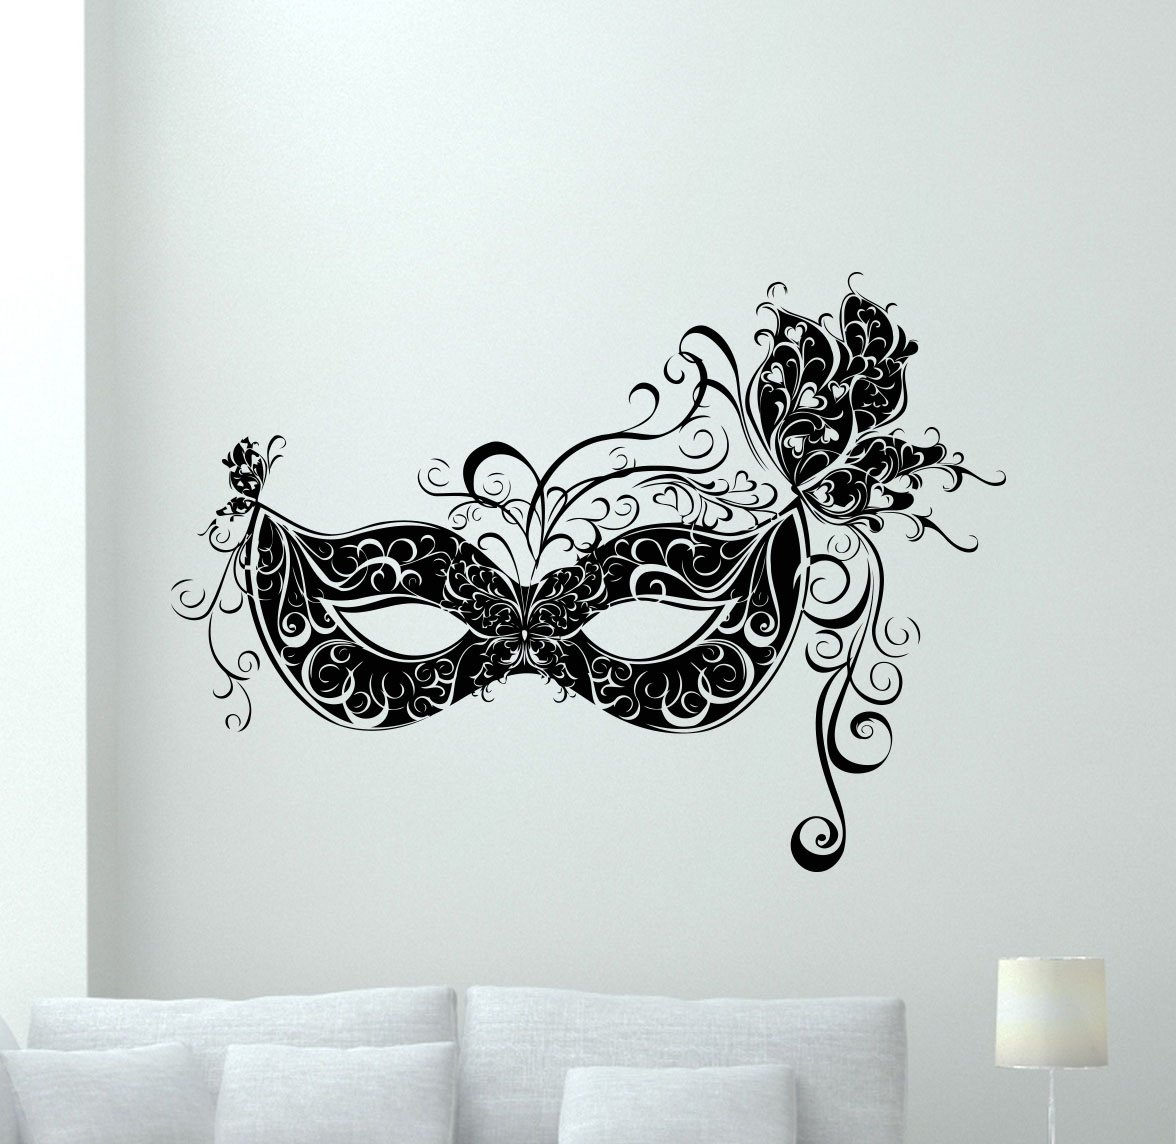 Amazon masquerade mask wall decal carnival vinyl sticker amazon masquerade mask wall decal carnival vinyl sticker attraction wall decor cool wall art kids teen girl boy room wall design modern bedroom wall amipublicfo Gallery